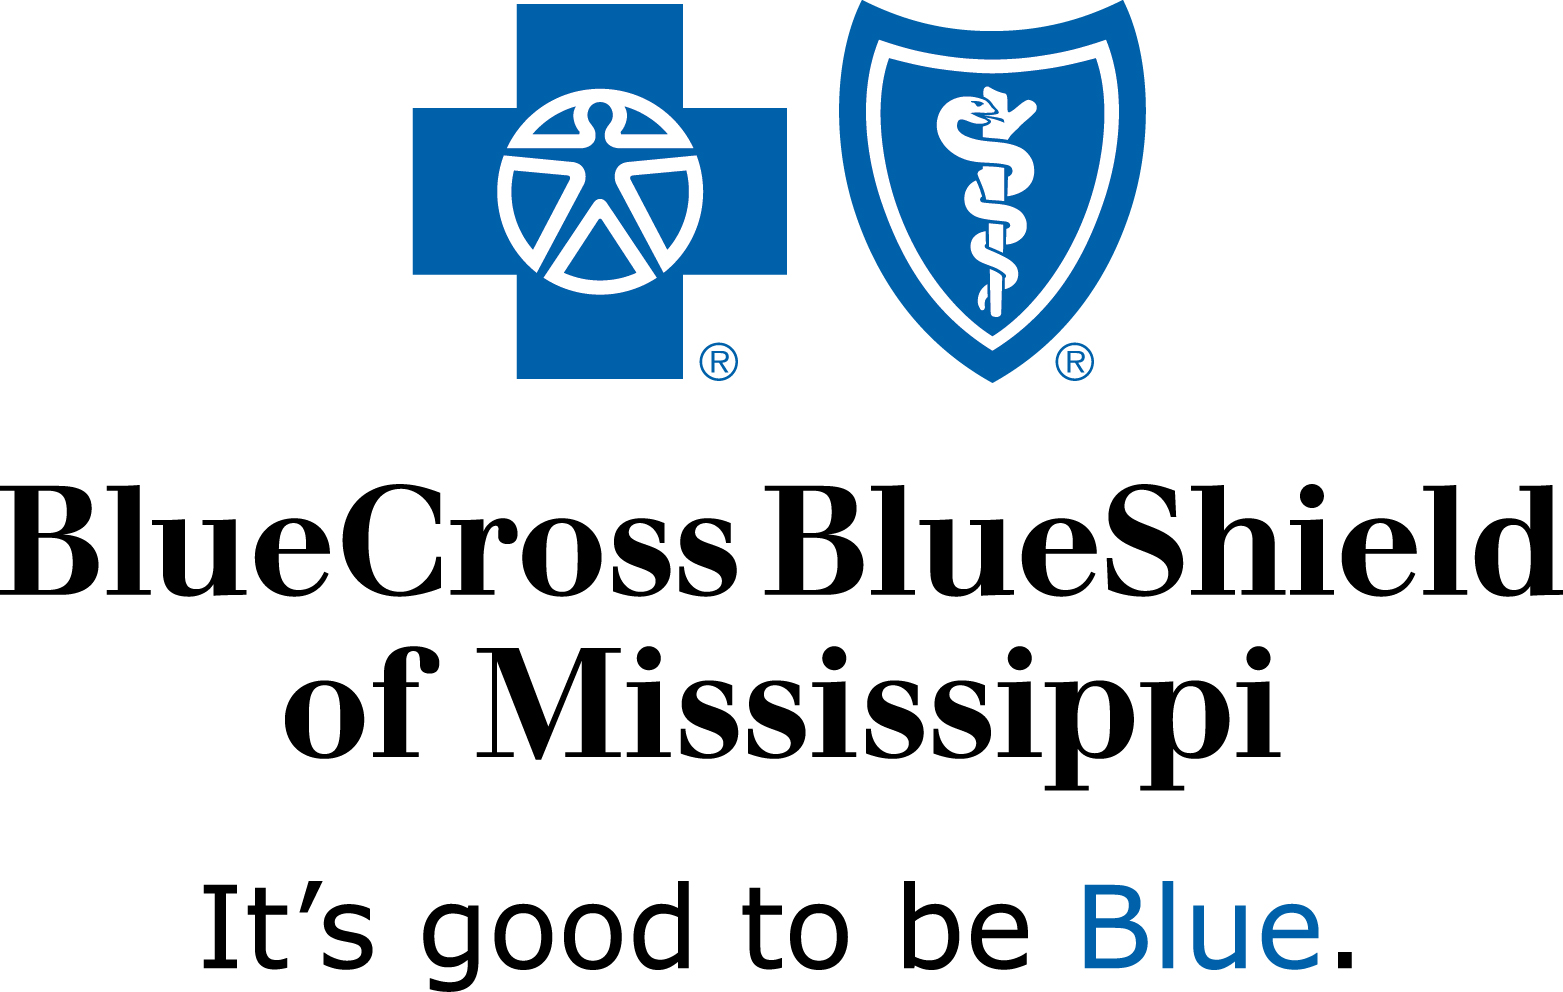 BLUE CROSS BLUE SHIELD OF MISSISSIPPPI